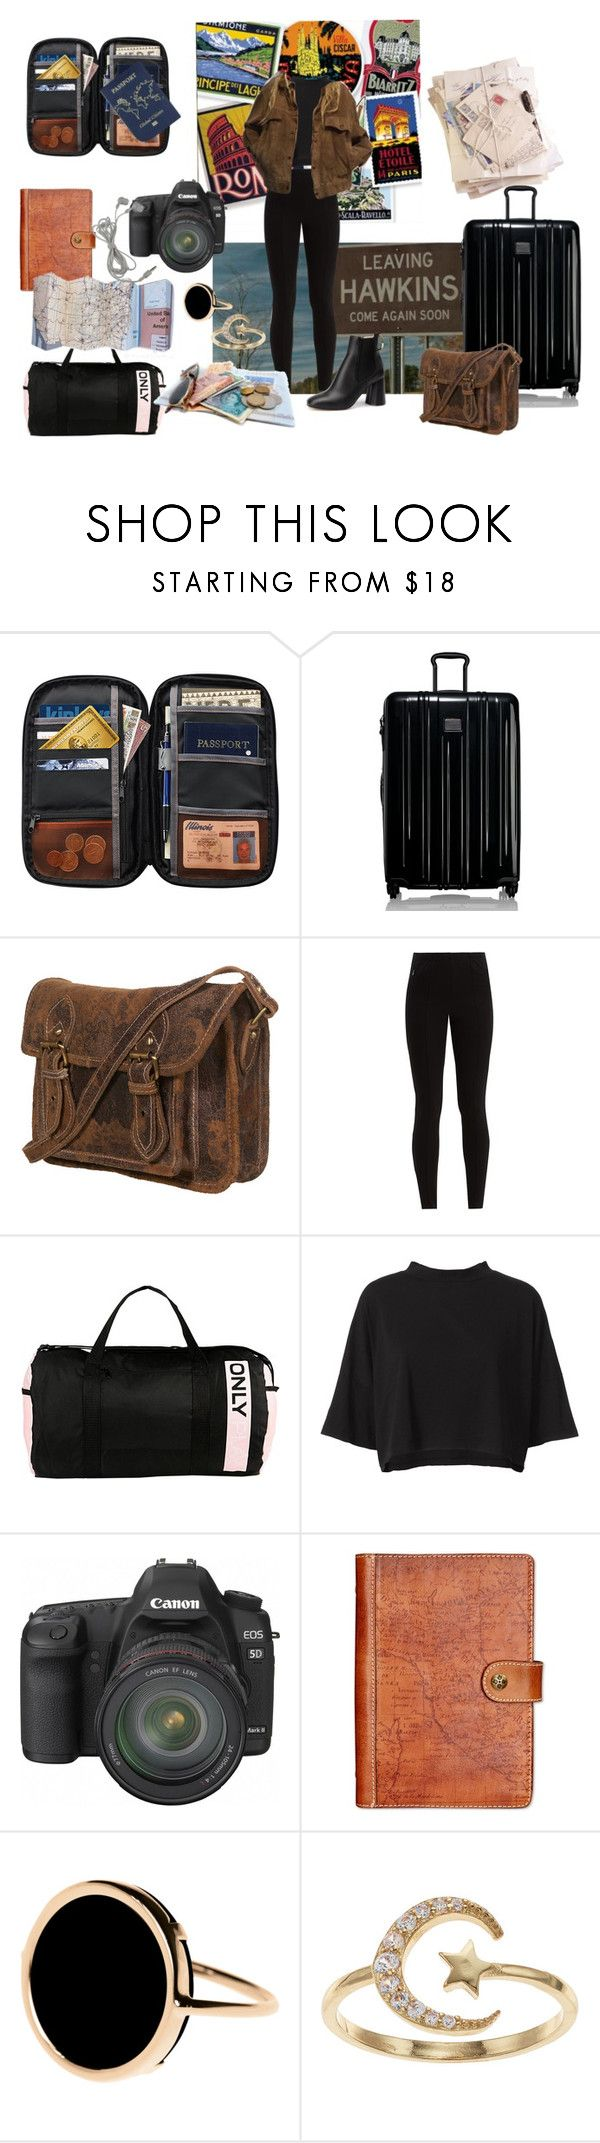 """Sin título #22"" by iojh7777 on Polyvore featuring moda, Keen Footwear, Lewis N. Clark, Tumi, Balenciaga, Only Play, RE/DONE, Canon, Patricia Nash y Ginette NY"